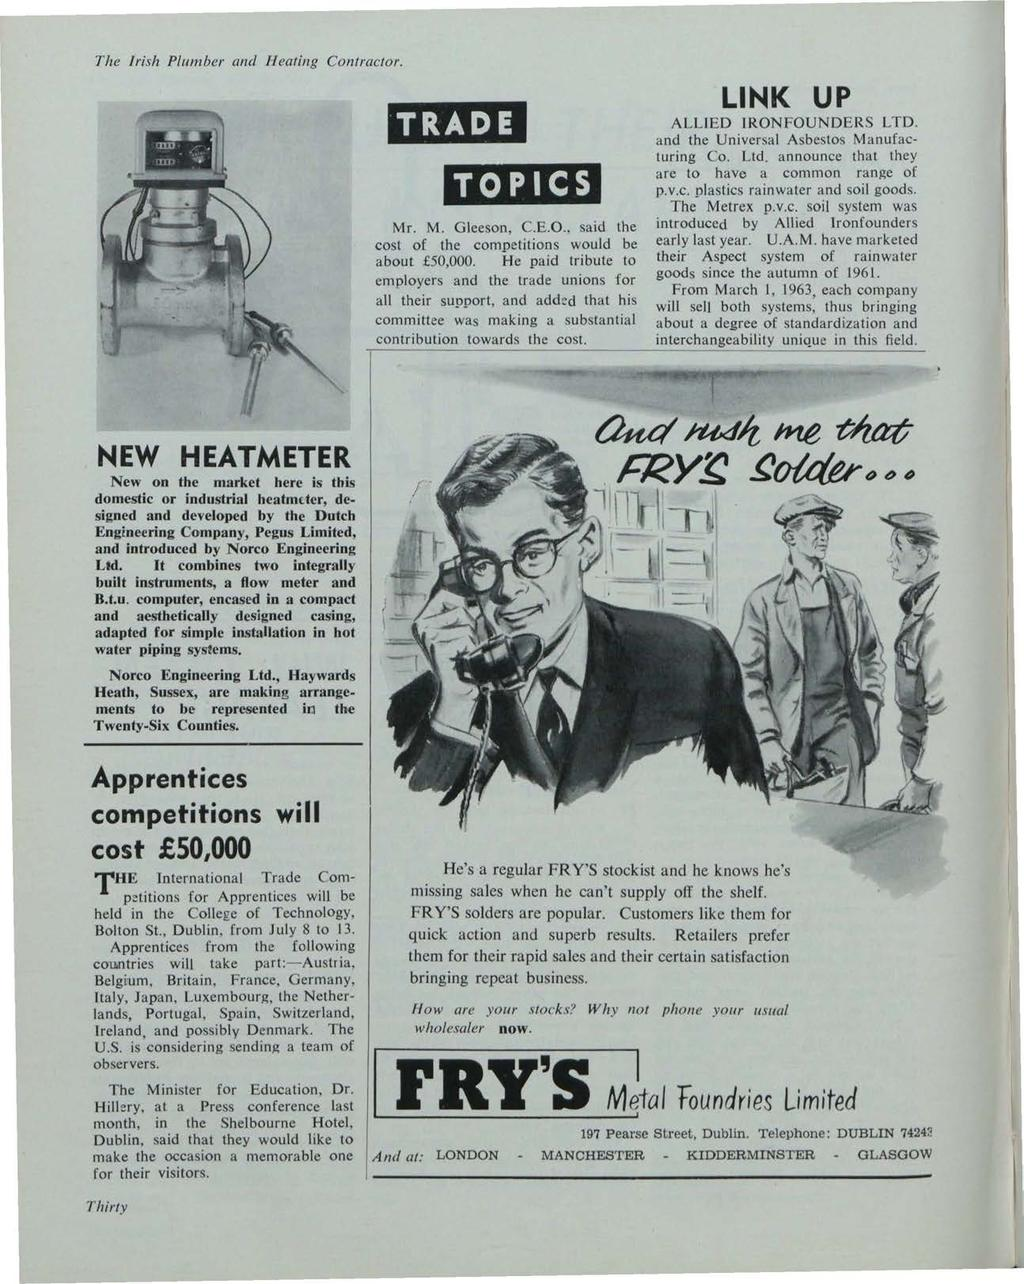 Building Services News, Vol. 2, Iss. 12 [1963], Art. 1 The Irish Plumber and Heating Contractor. TRADE TOPICS Mr. M. Gleeson, C.E.O., said the cost of the competitions would be about 50,000.